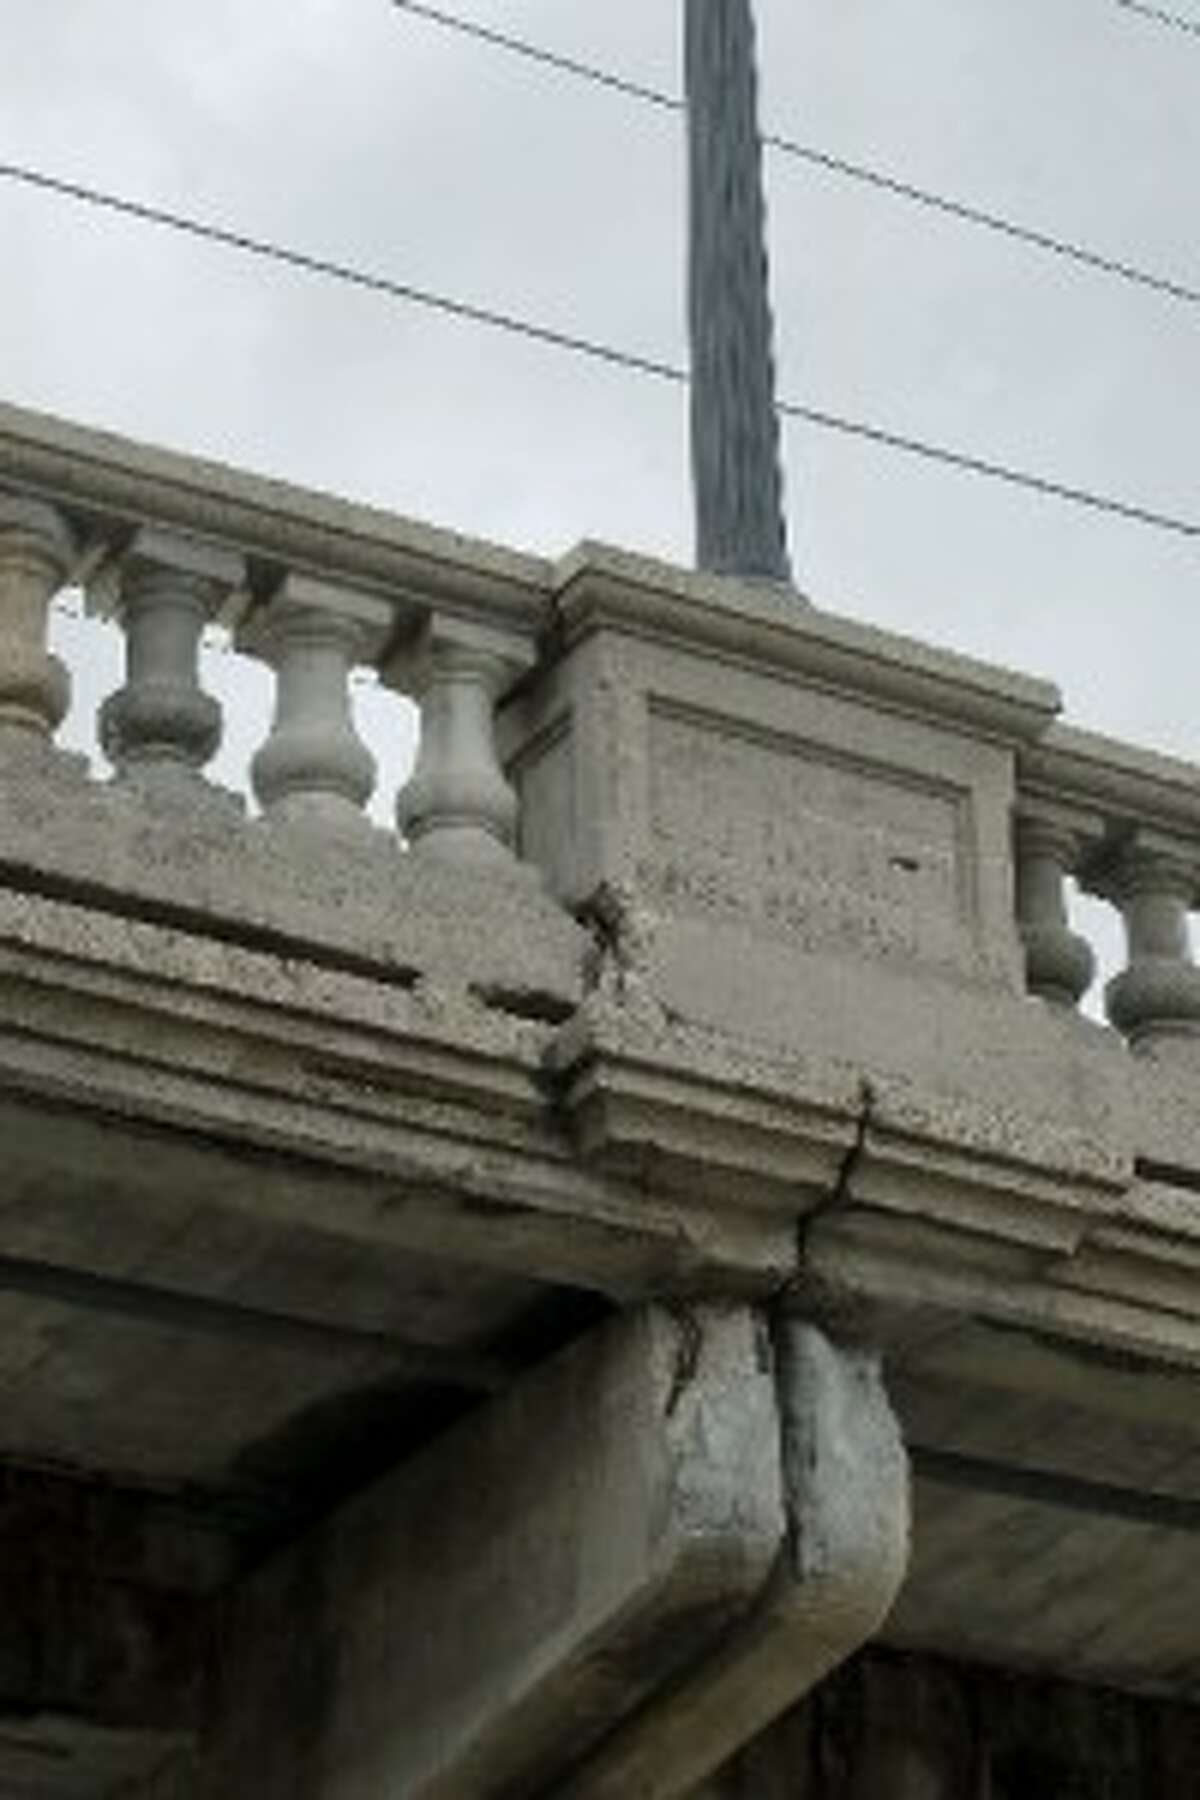 The Yale Street Bridge is going to get some shoring up pretty soon.